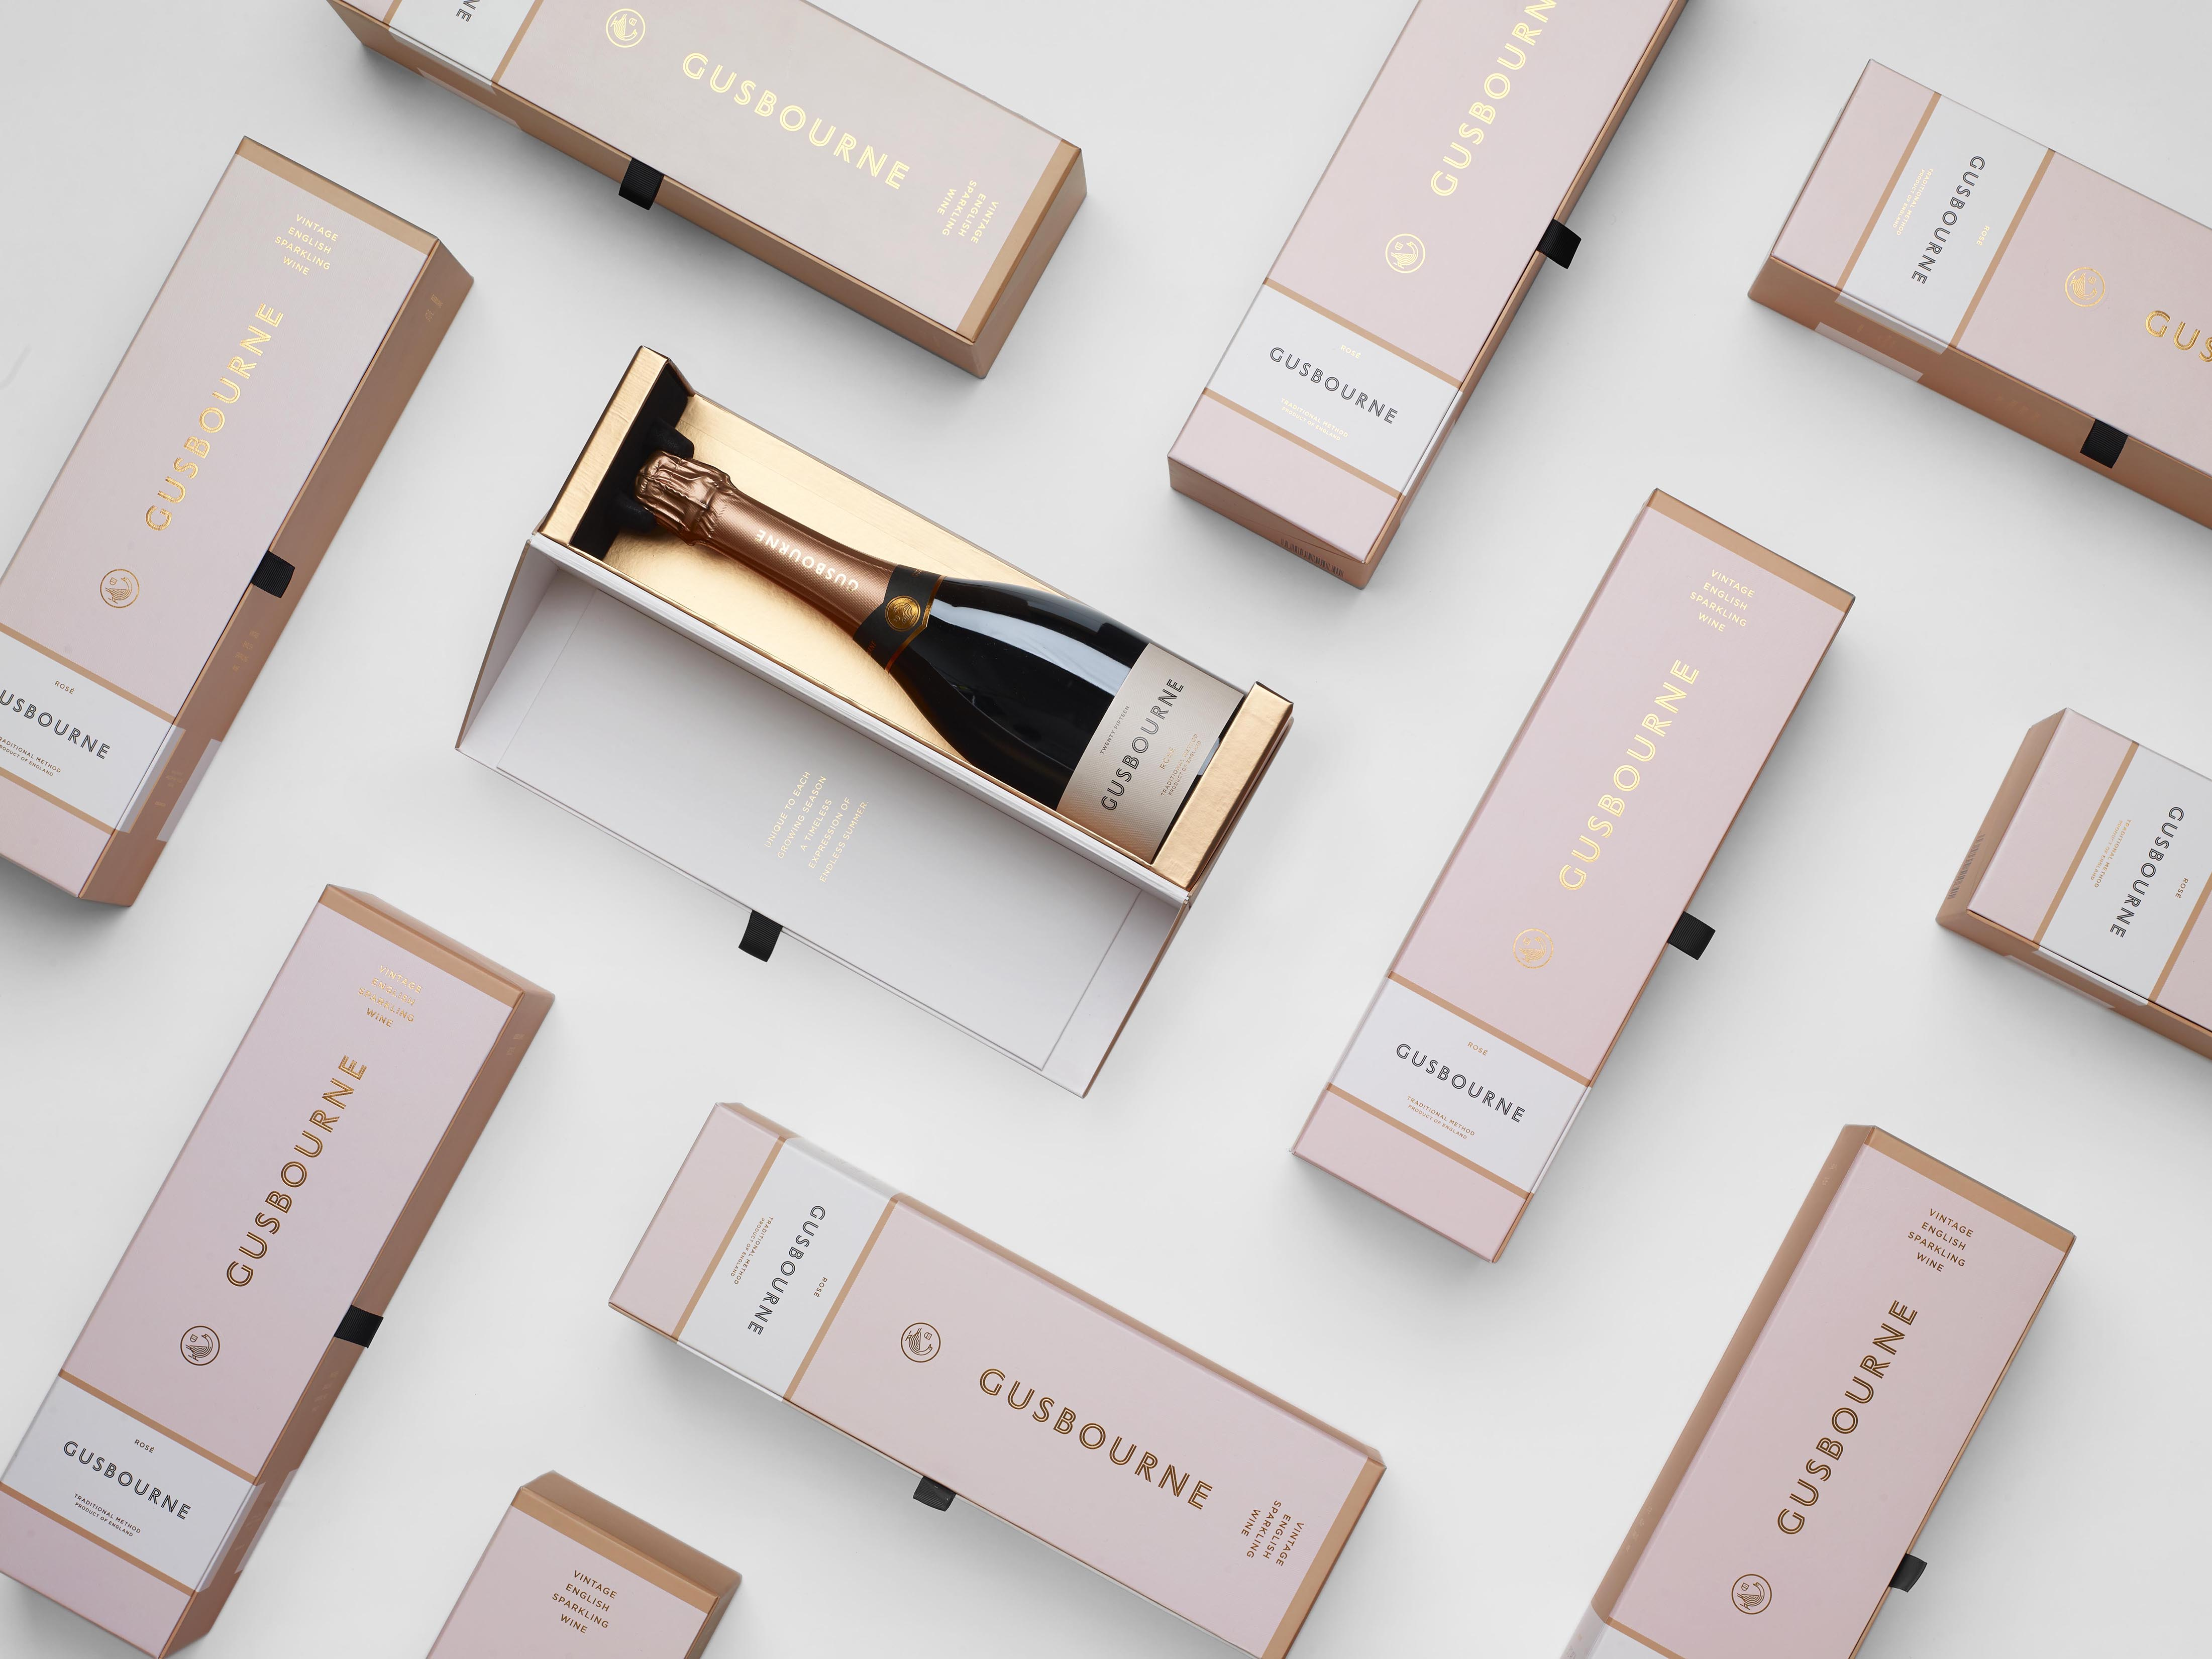 Wondersphere Developed Innovative New Packaging for Gusbourne